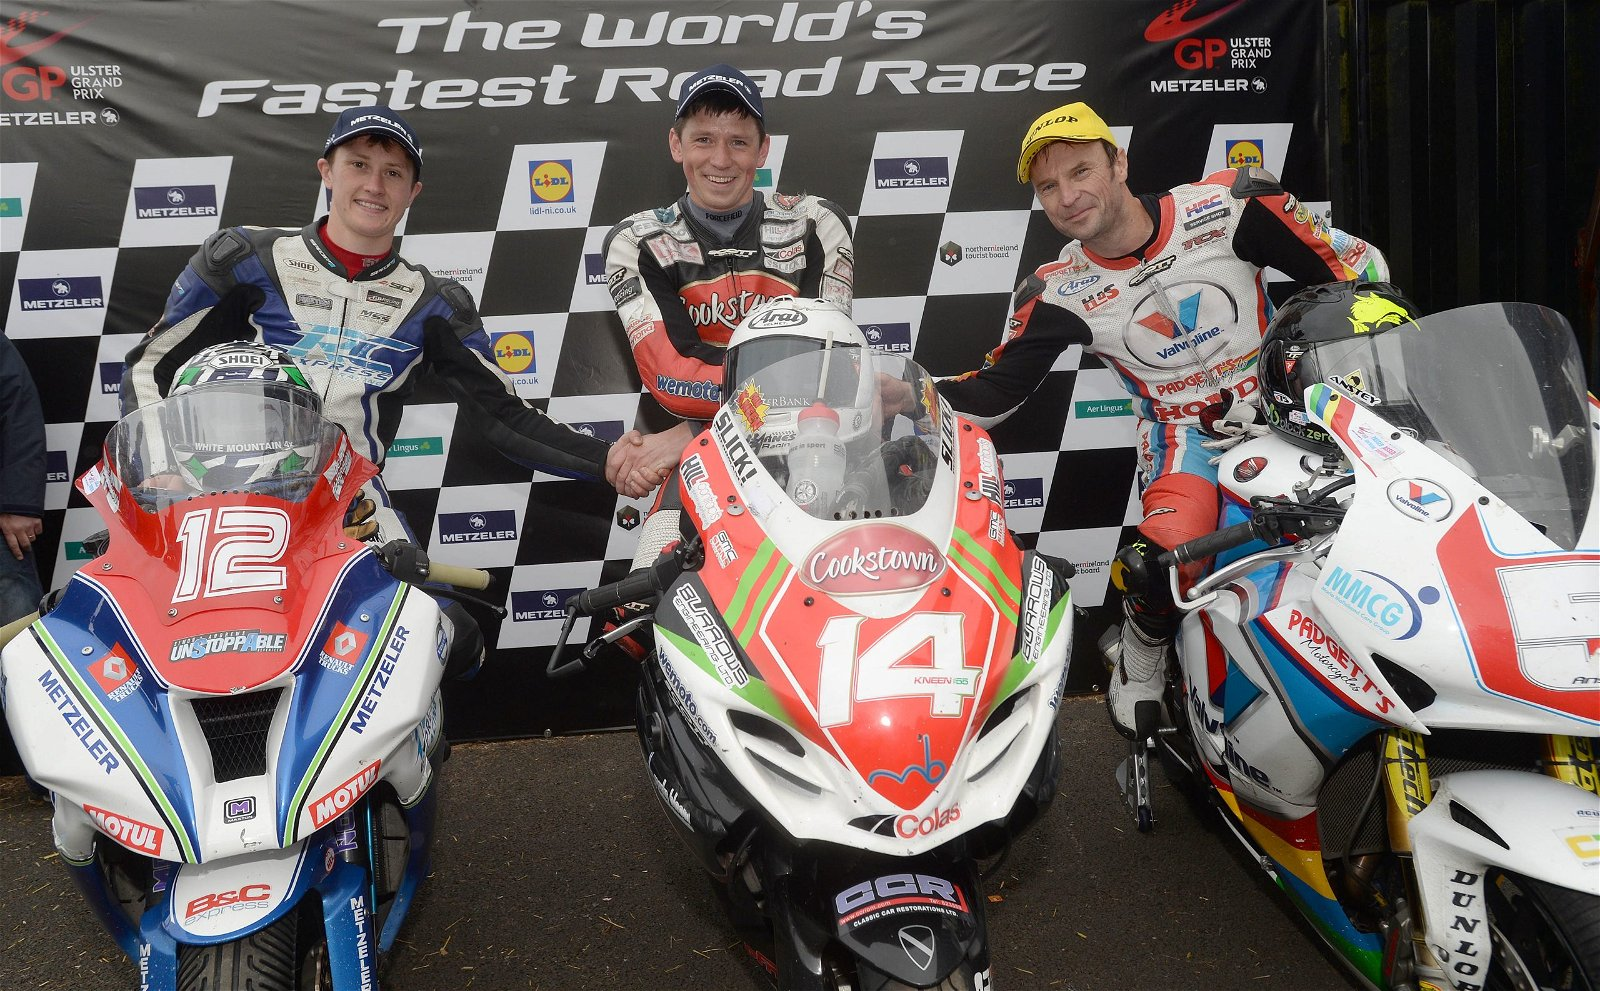 Last year's Superstock podium - Dean Harrison, Dan Kneen and Bruce Anstey - image by Pacemaker Press International